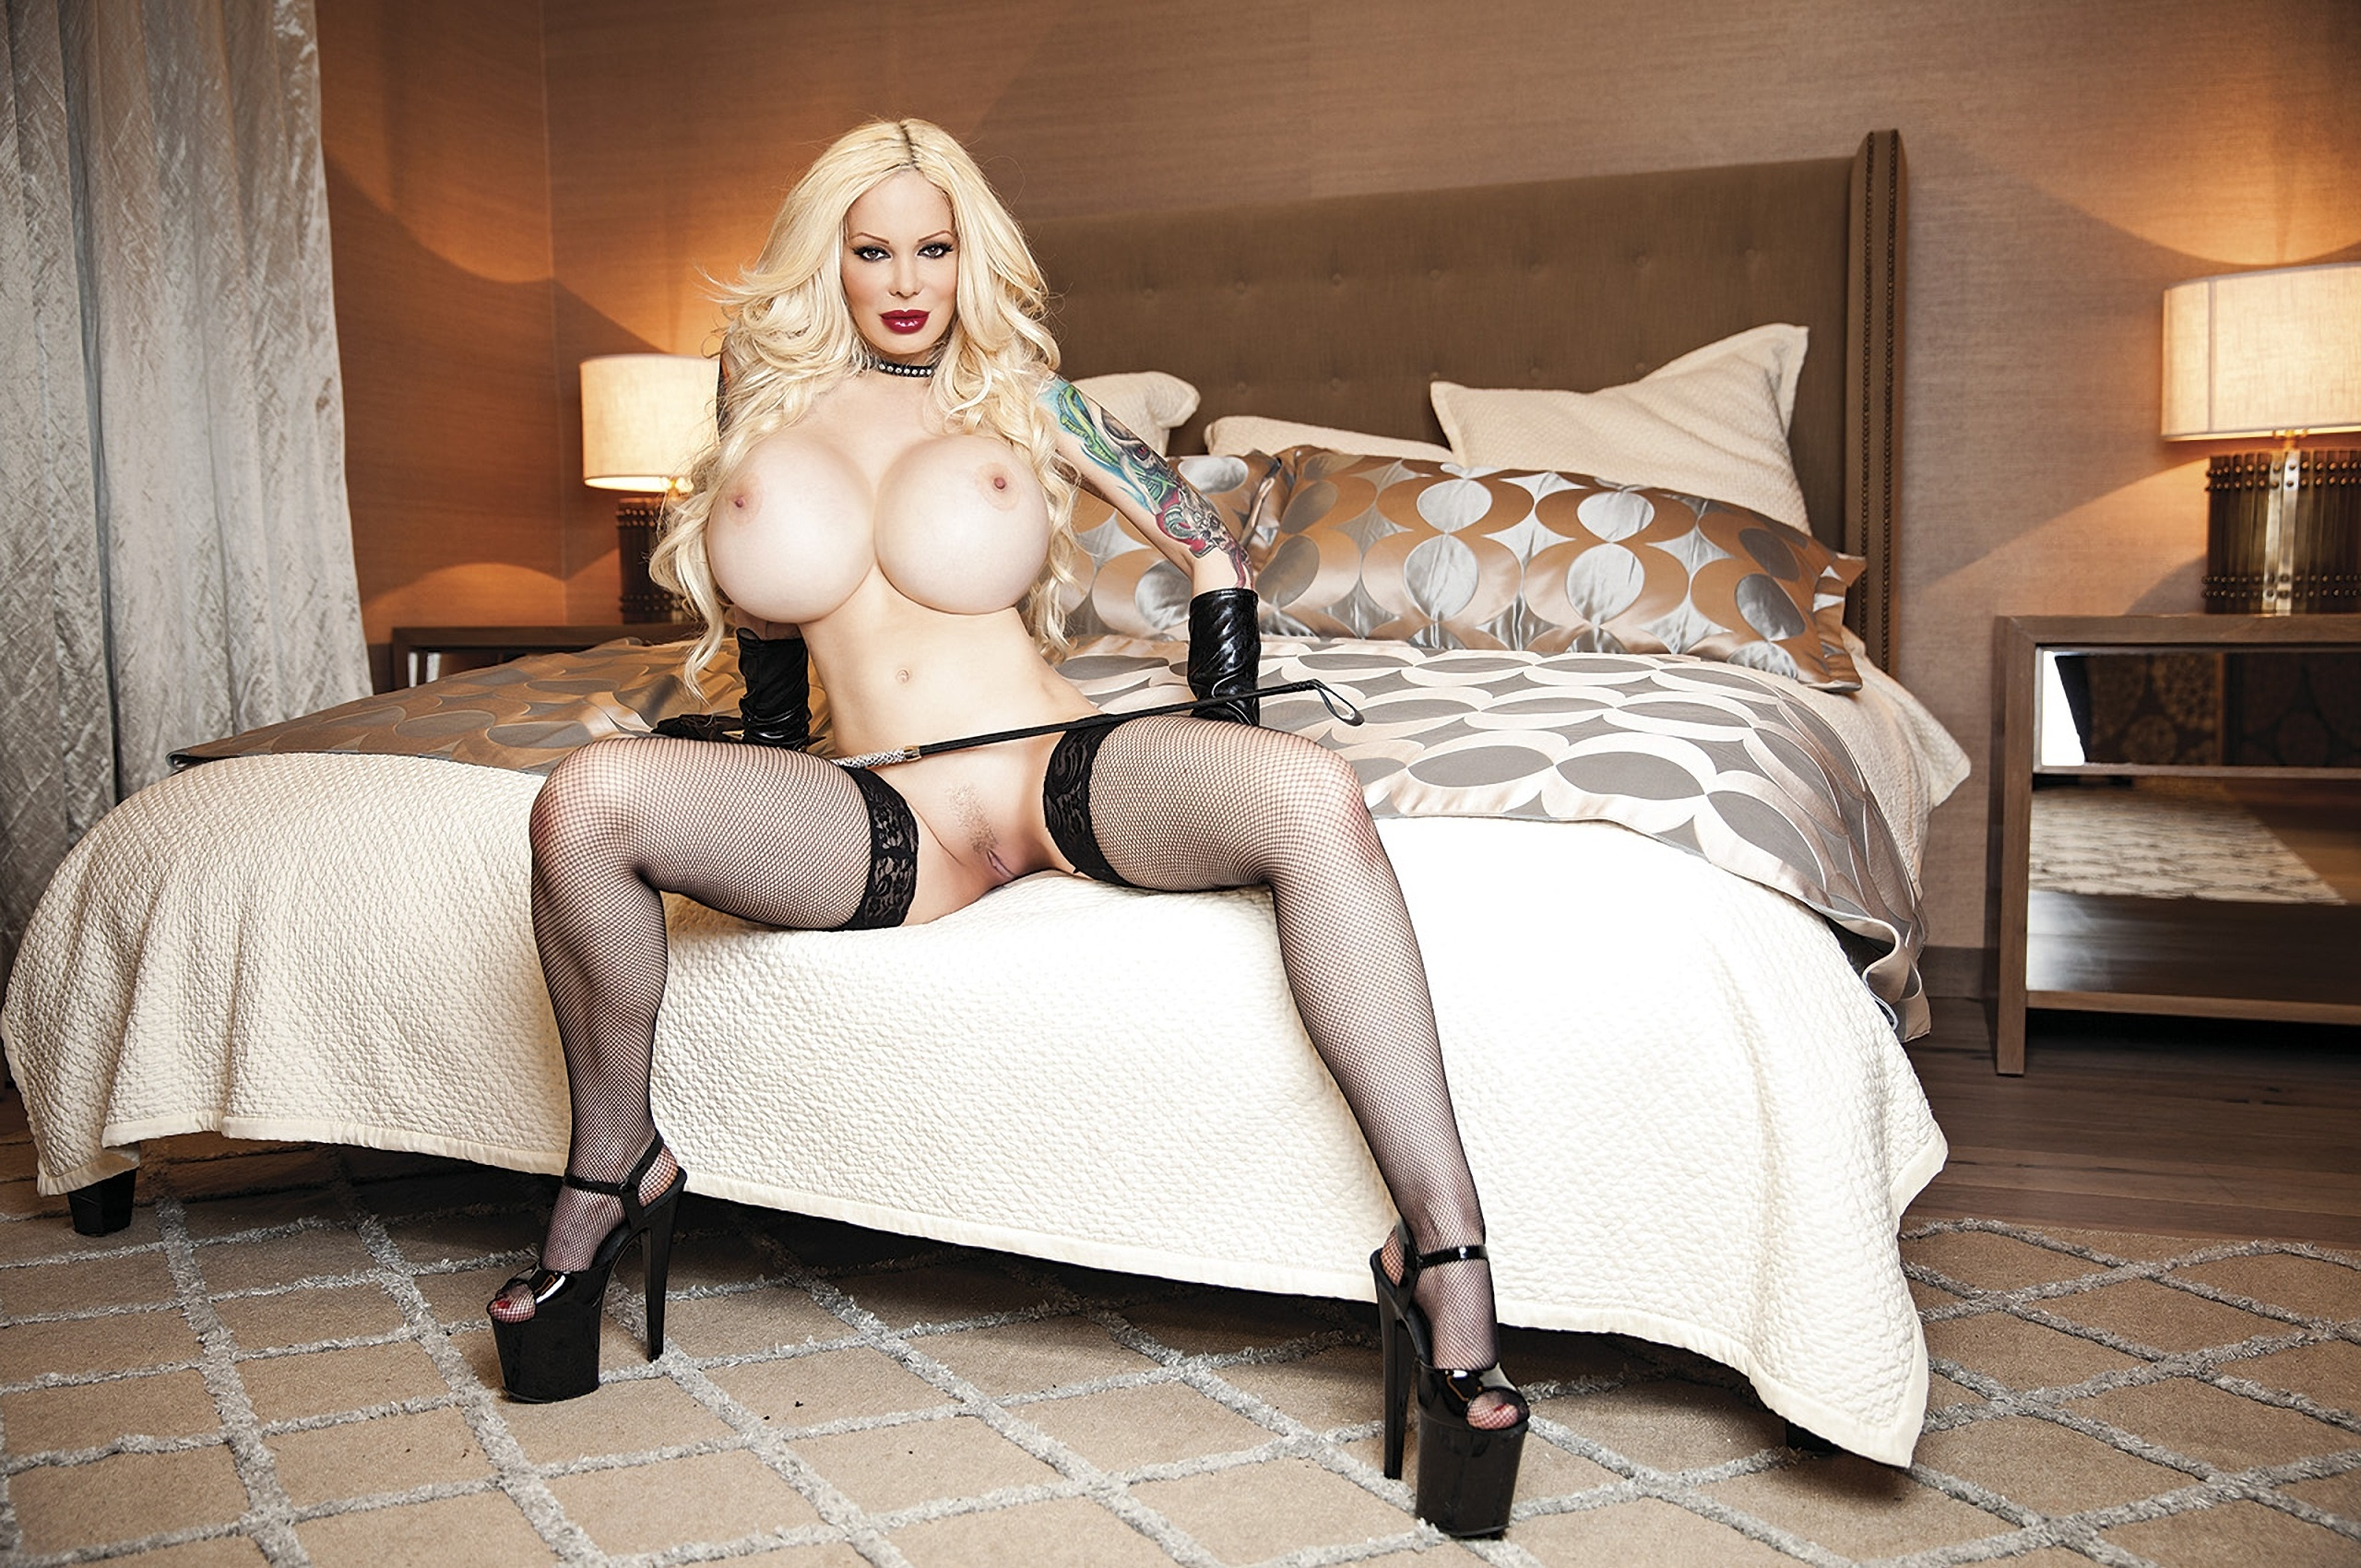 Phrase Busty blonde black stockings and high heels can